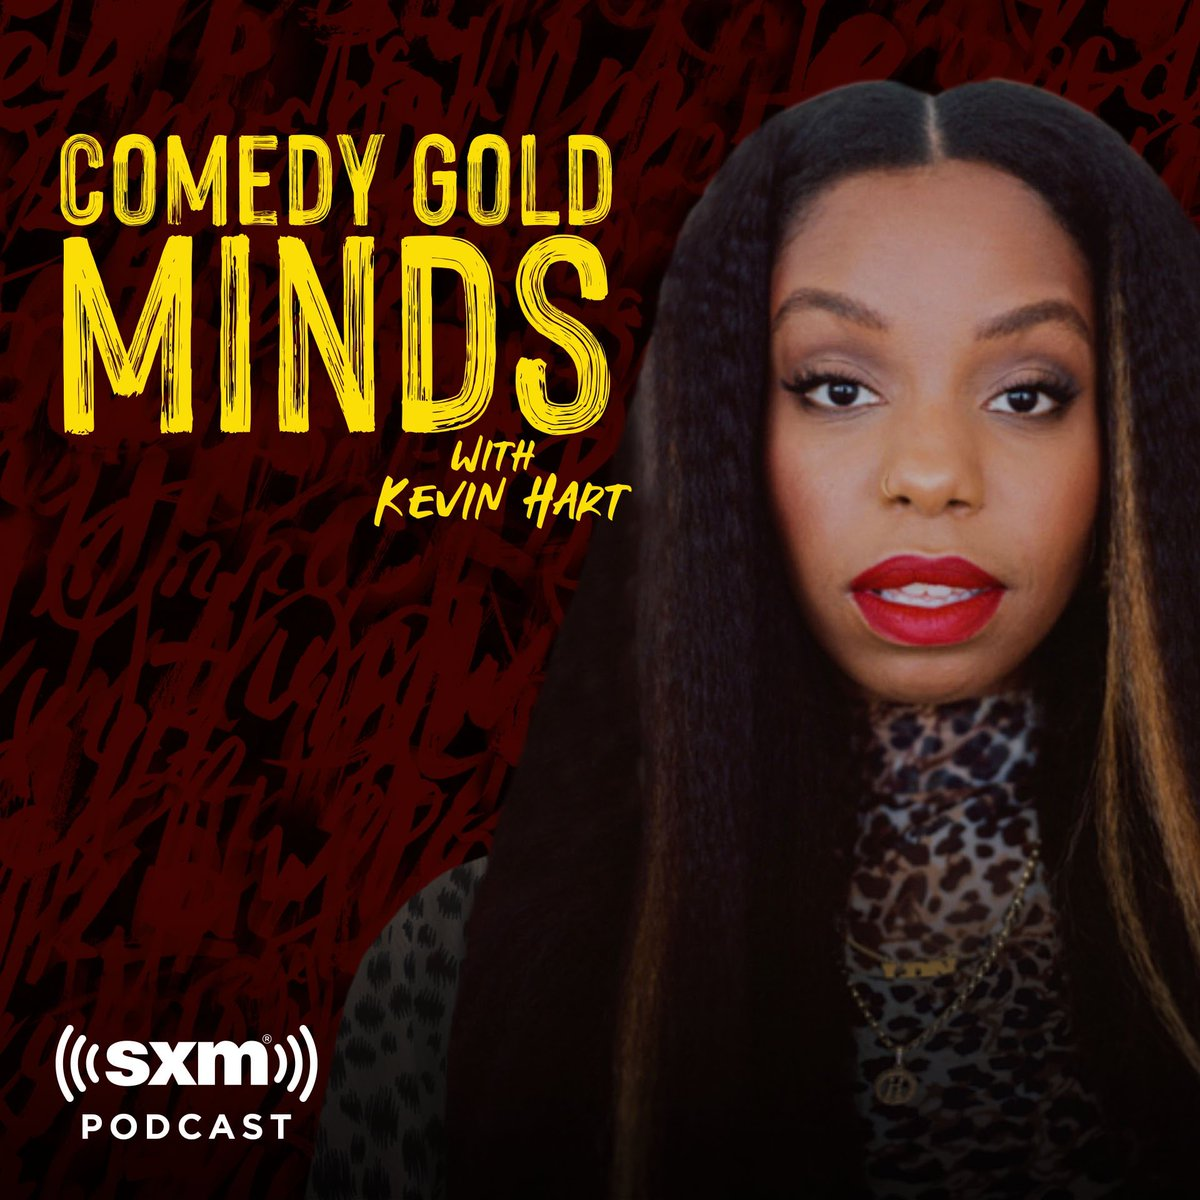 Guys! My comedy hero @KevinHart4real sat down and interviewed ME for his new #ComedyGoldMinds podcast!!!   It was epic!!! ... check it out below 🙈